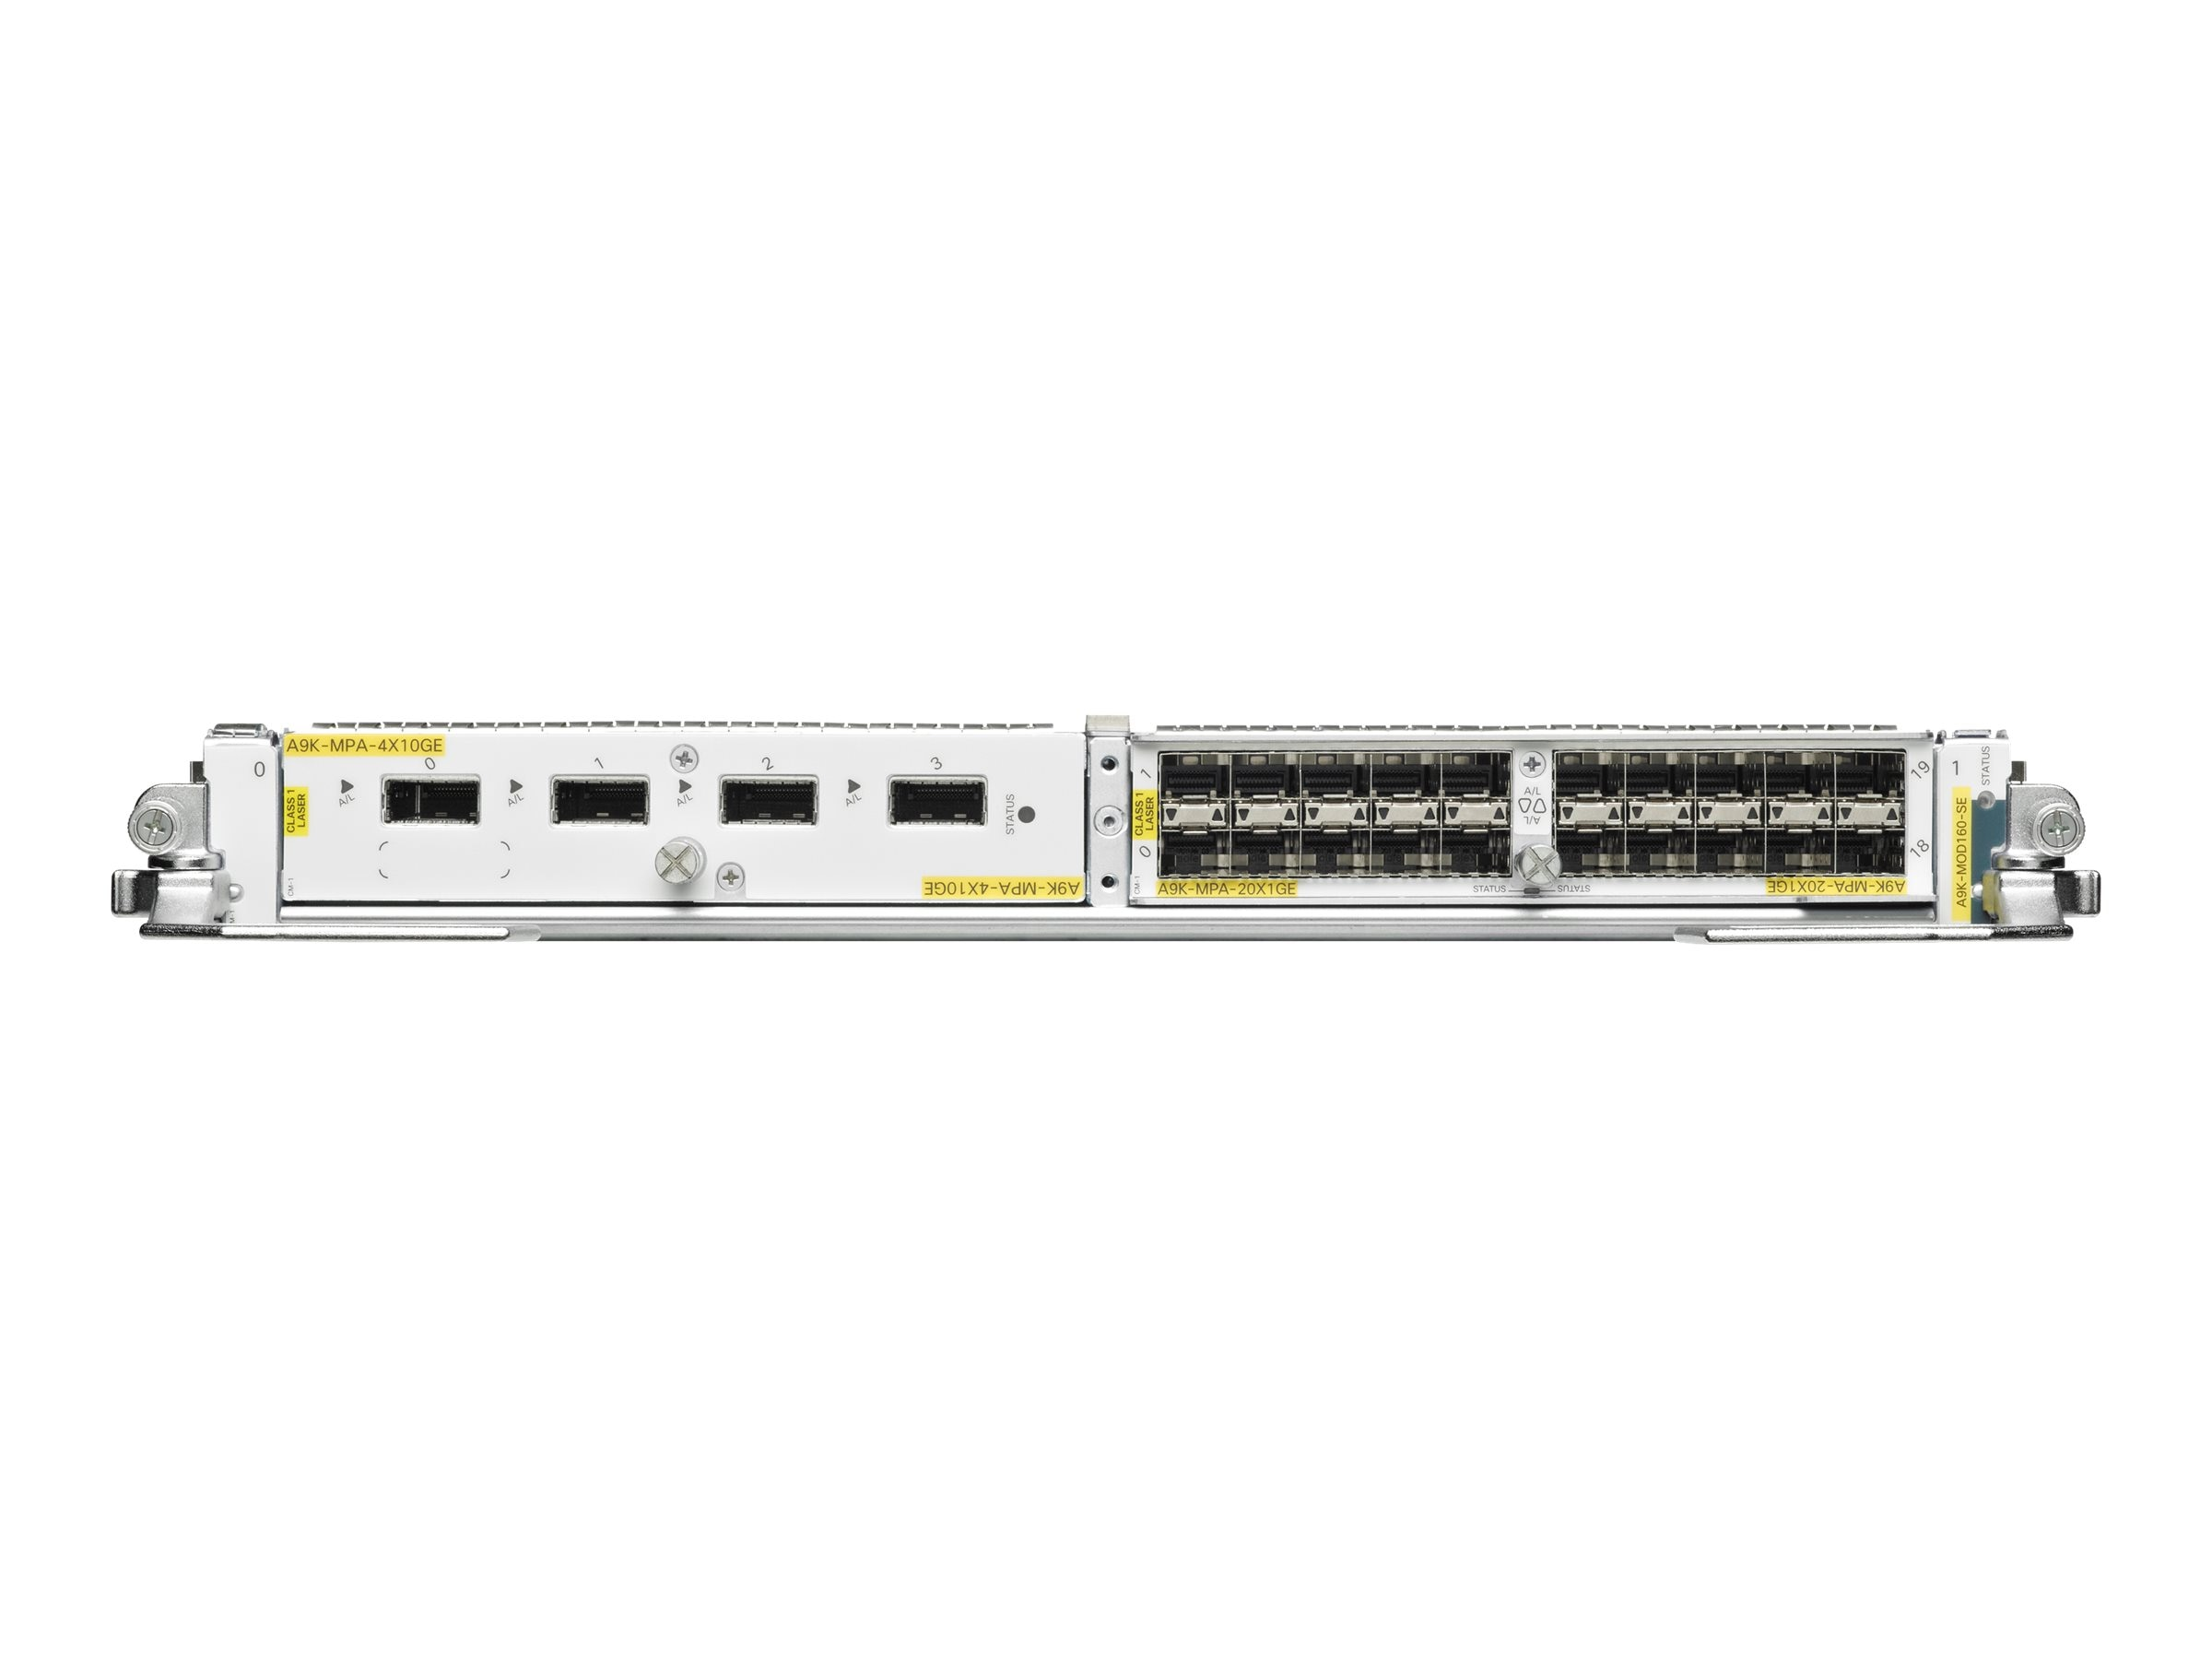 Cisco ASR 9000 Mod160 Modular Line Card, Service Edge Optimized (Req Modular Port Adapters), A9K-MOD160-SE